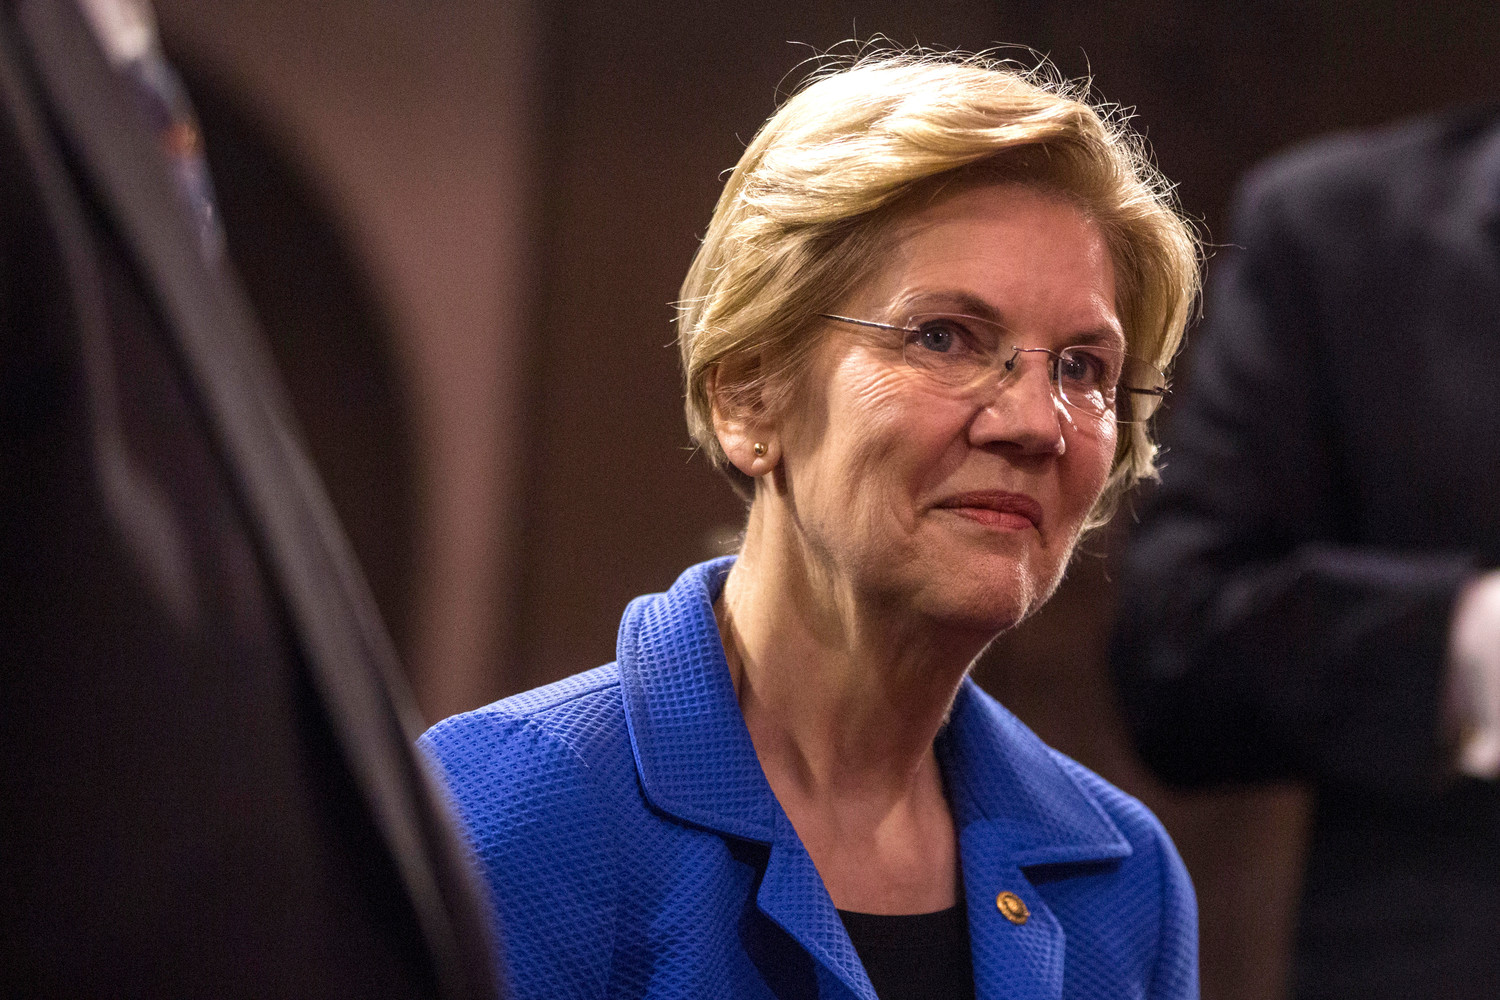 Sen. Elizabeth Warren (D-MA) is pictured during a mock swearing in ceremony with Vice President Mike Pence on Capitol Hill on Jan. 3, 2019.